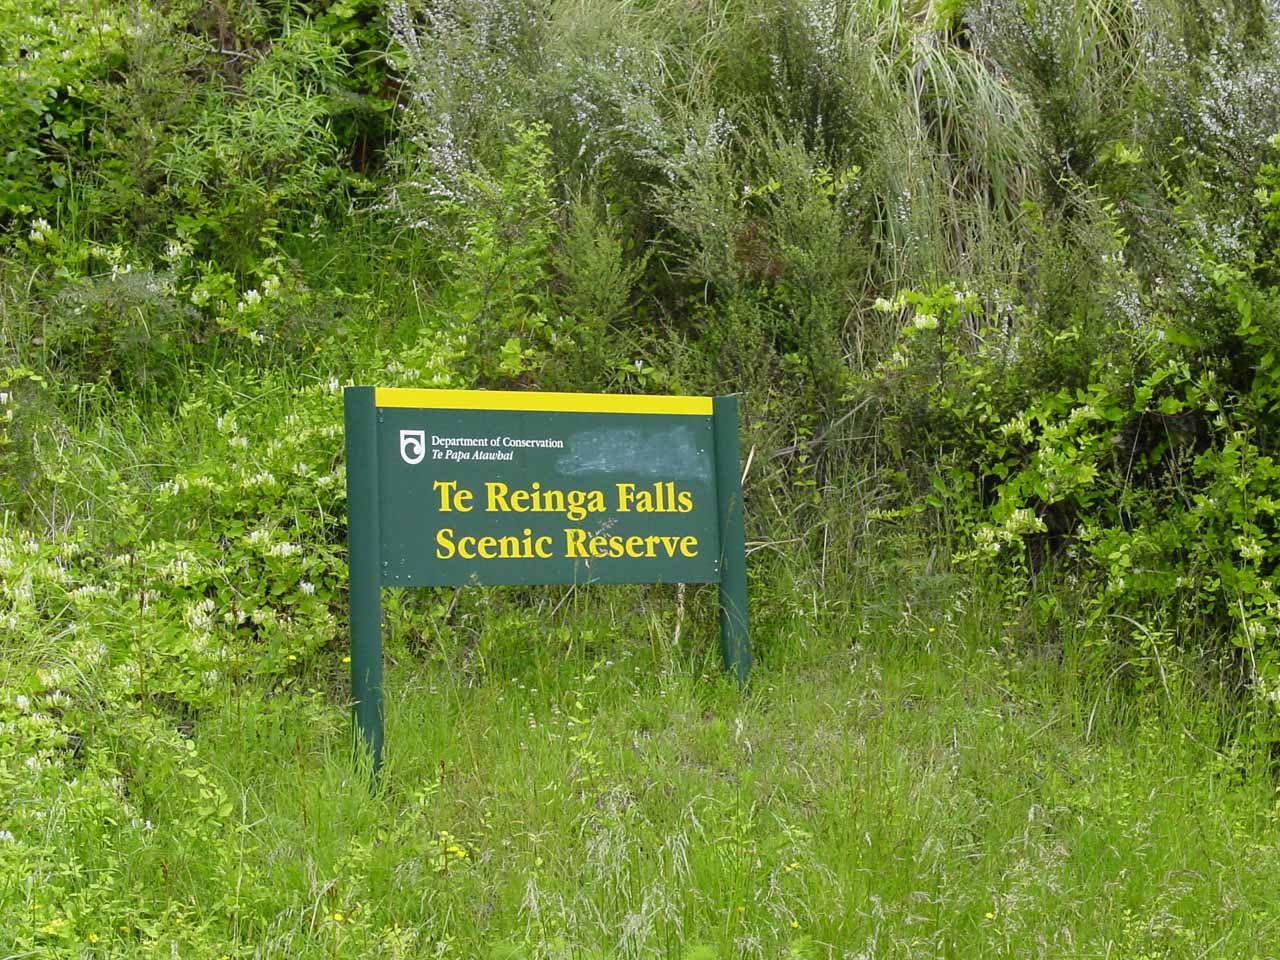 The signpost at the car park for Te Reinga Falls